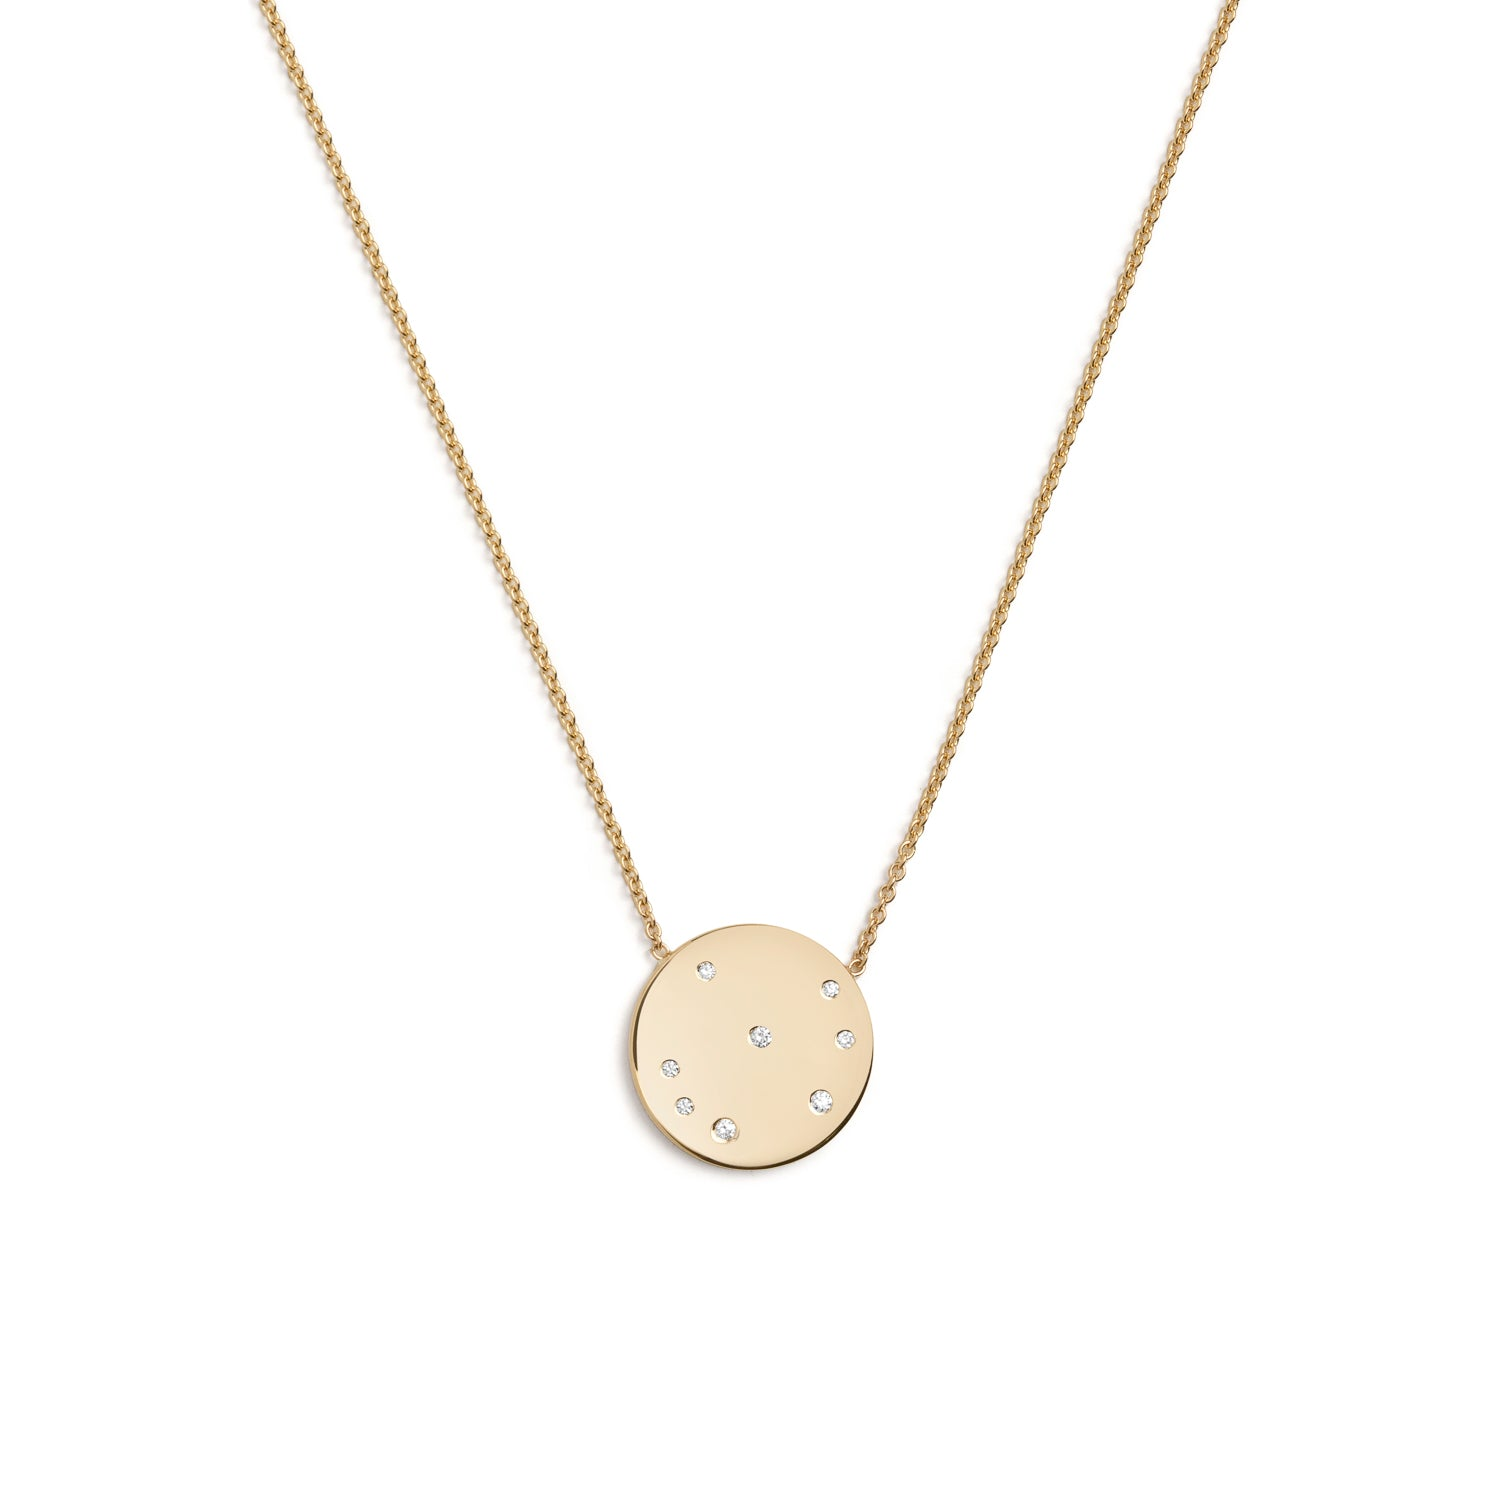 Sagittarius Star Sign Necklace in Gold